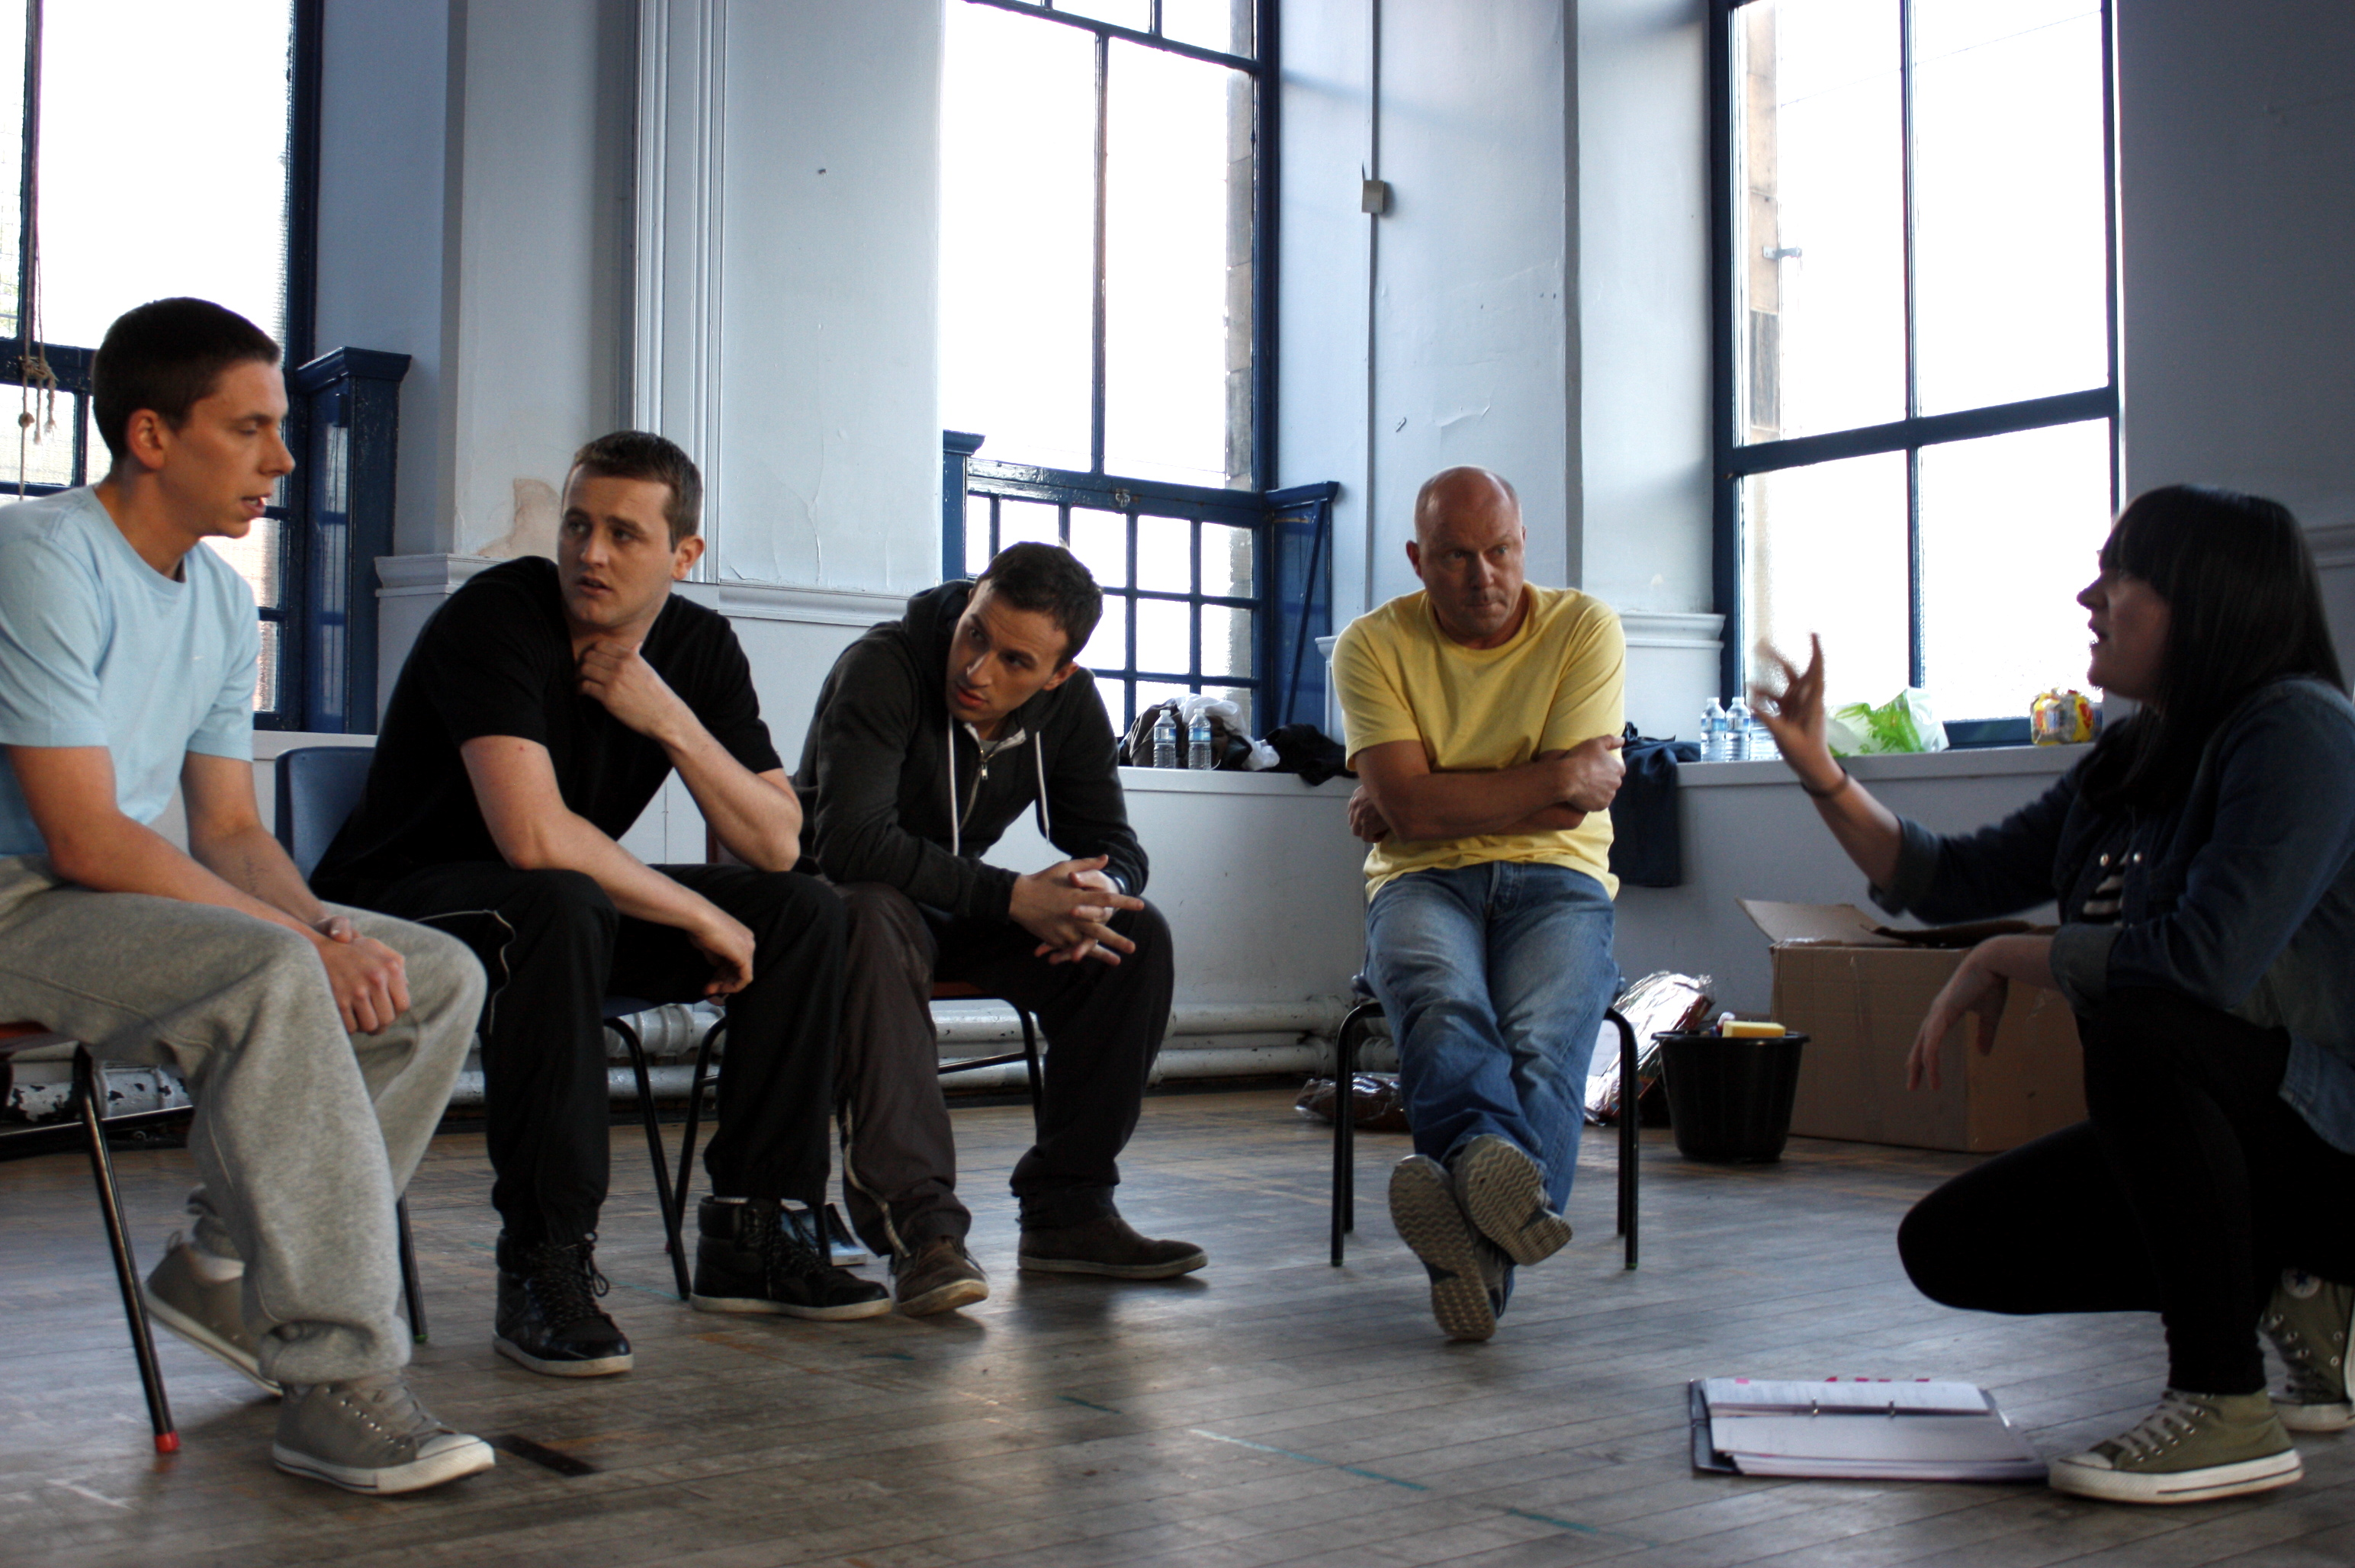 Dirty Water's first rehearsal 2012